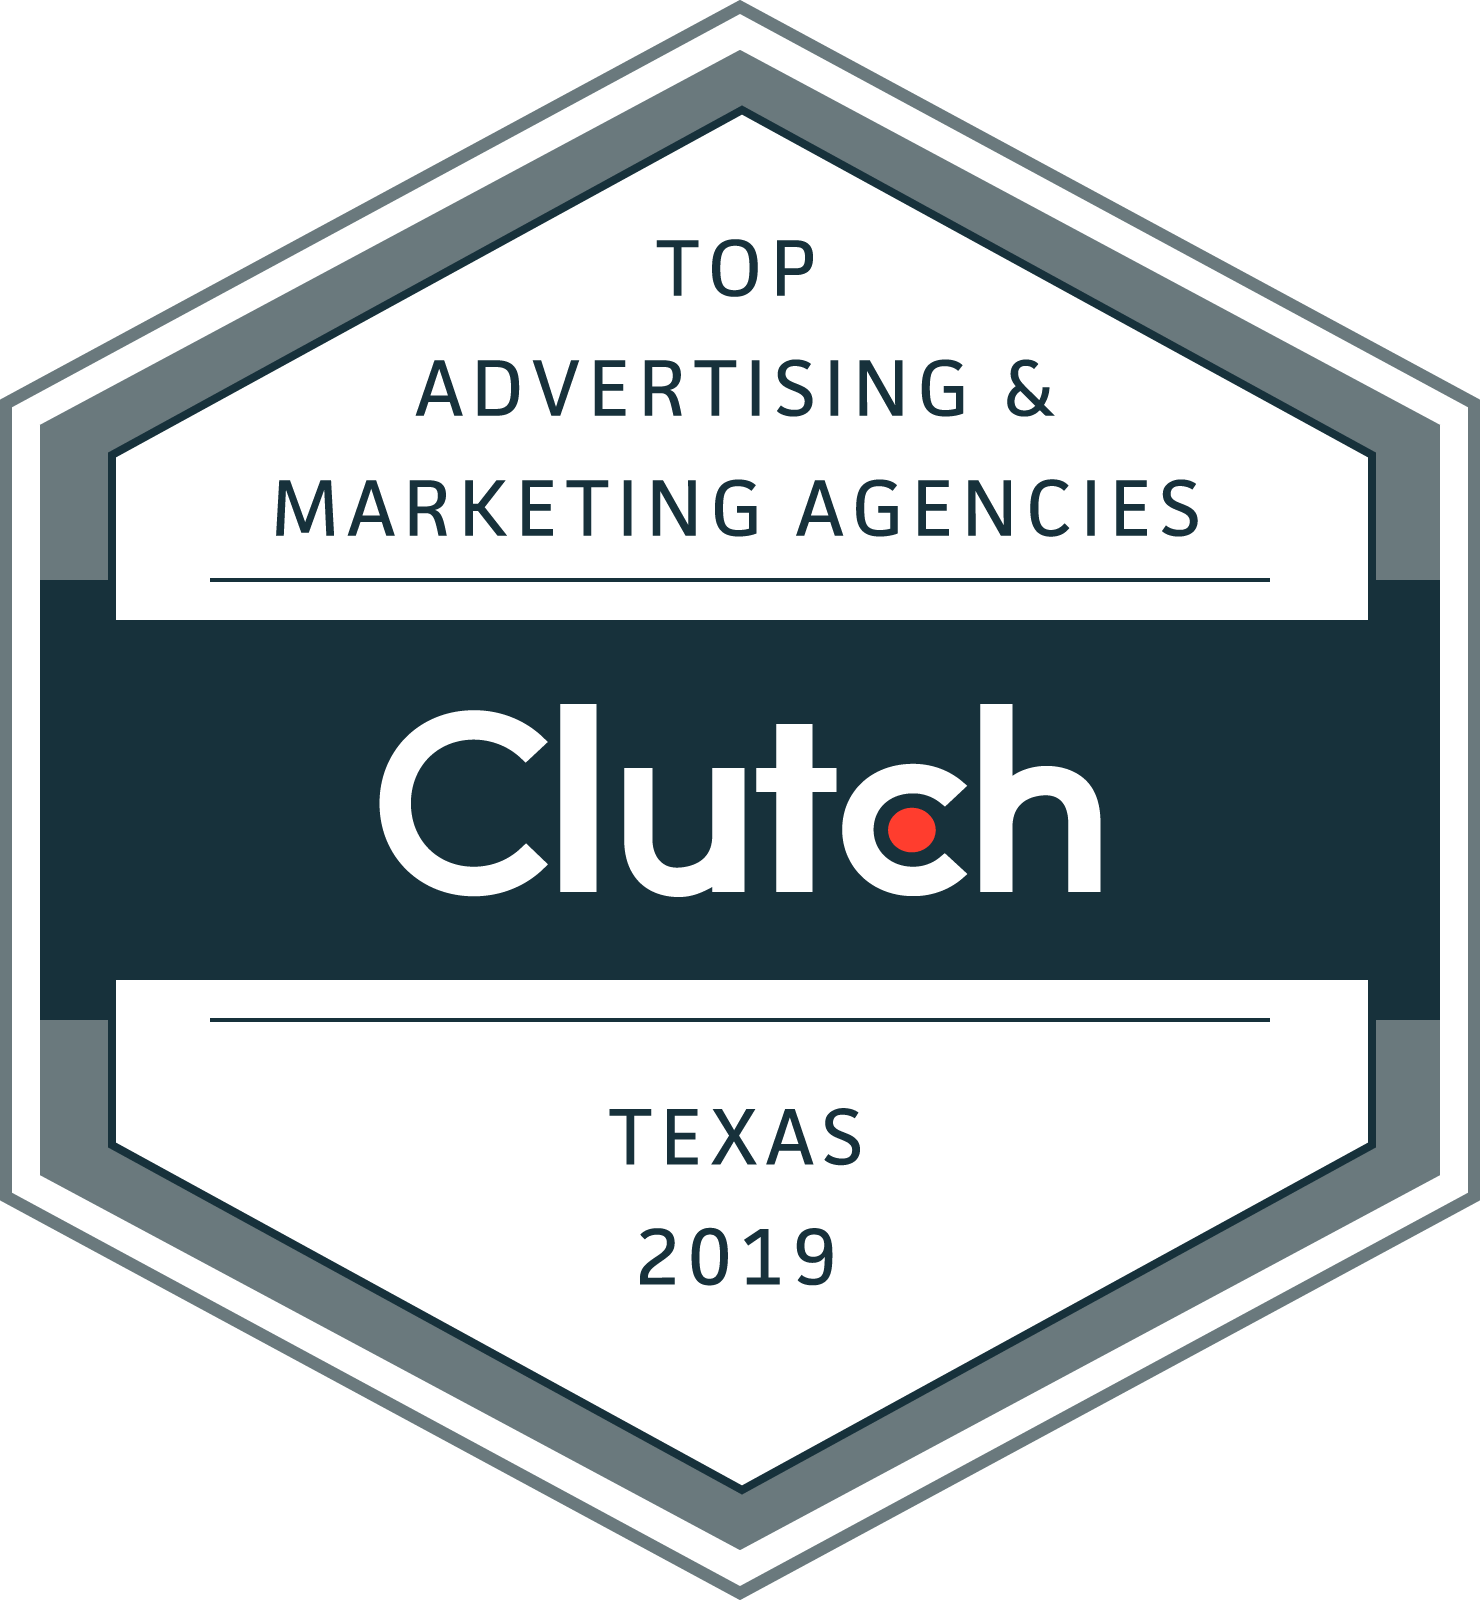 Top Advetising & Marketing Agencies Clutch Texas 2019